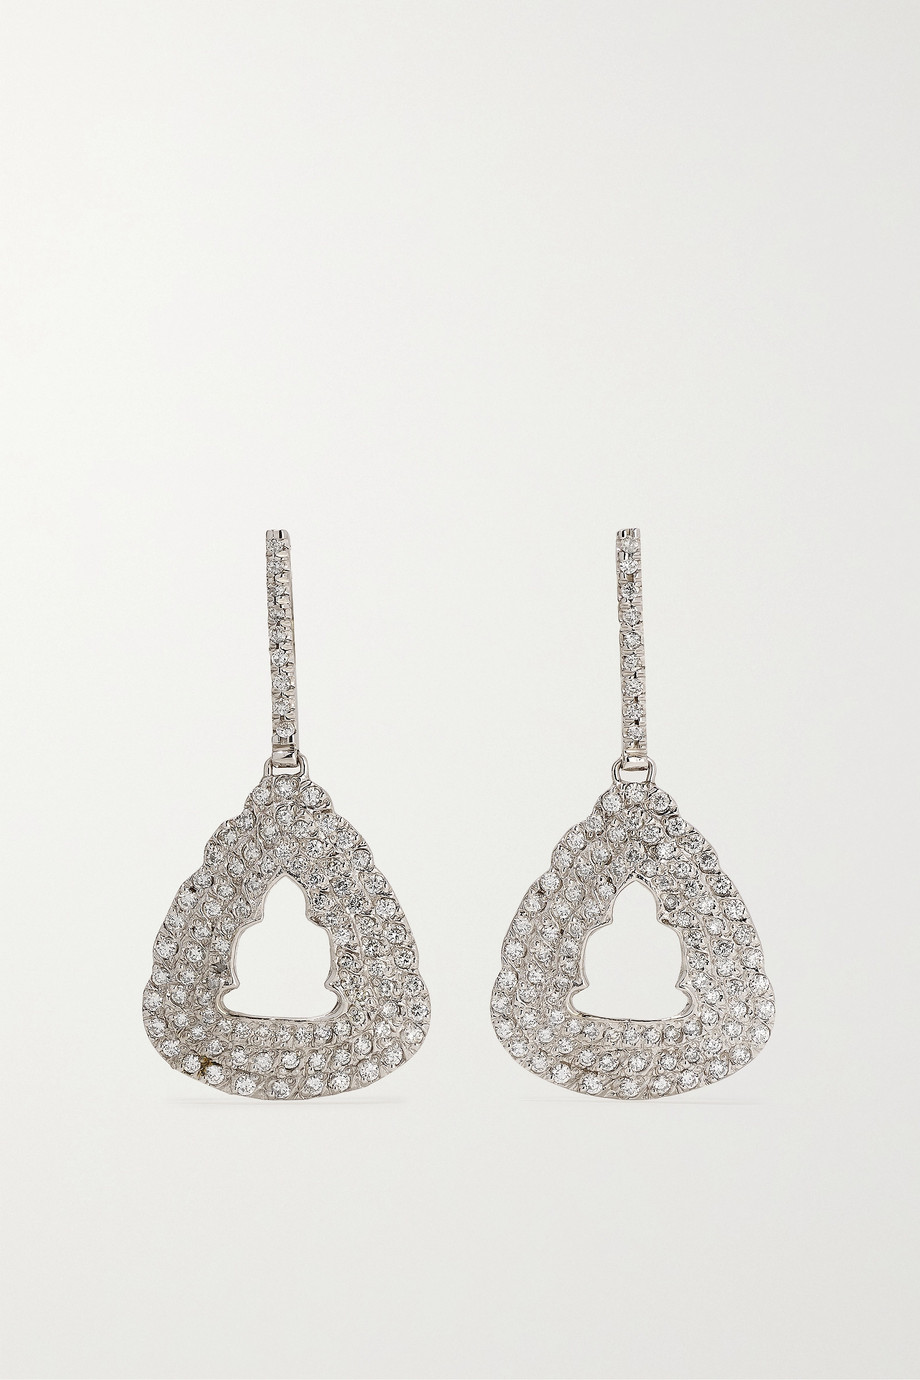 Kimberly McDonald 18-karat white gold diamond earrings